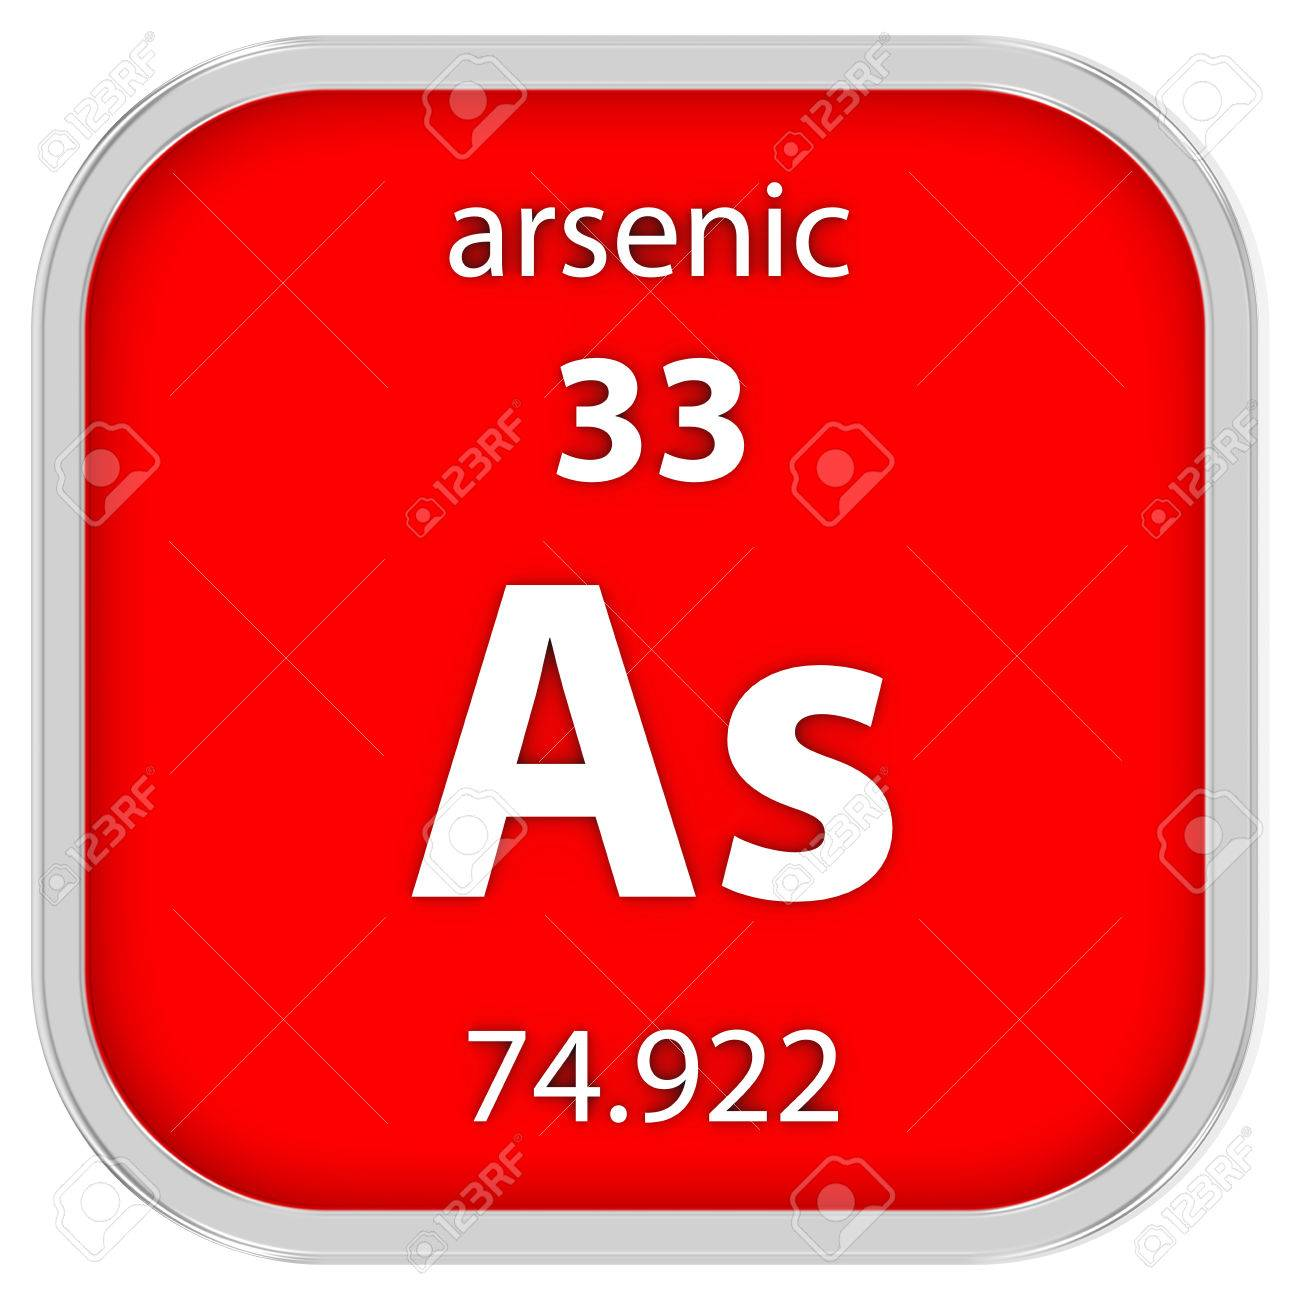 Arsenic material on the periodic table stock photo picture and arsenic material on the periodic table stock photo 41159063 biocorpaavc Image collections